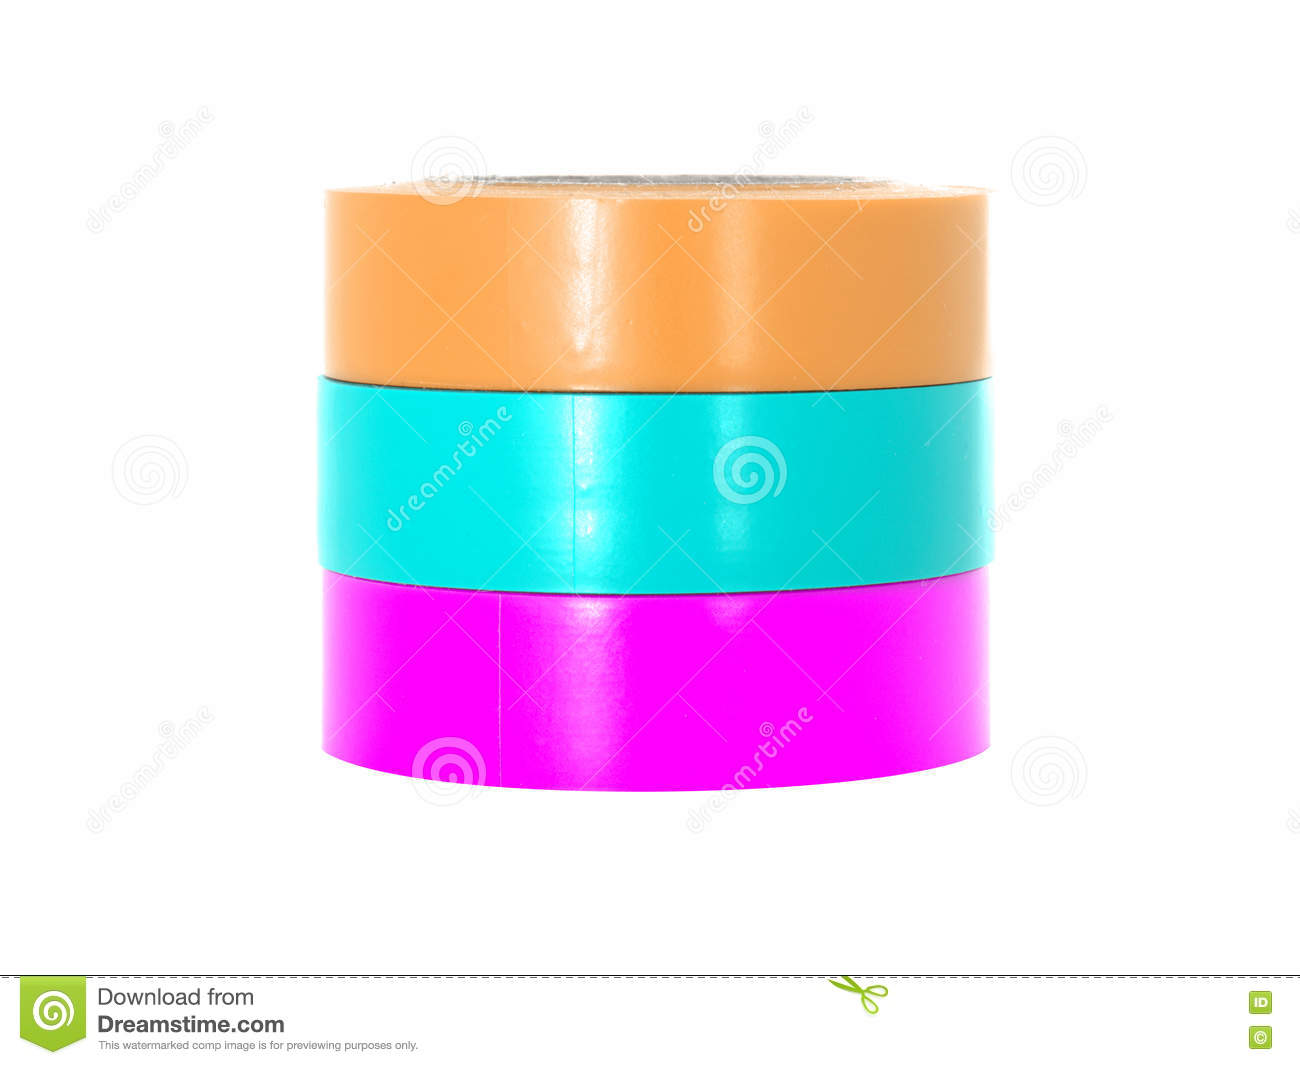 orange-cyan-magenta-insulating-tape-reel